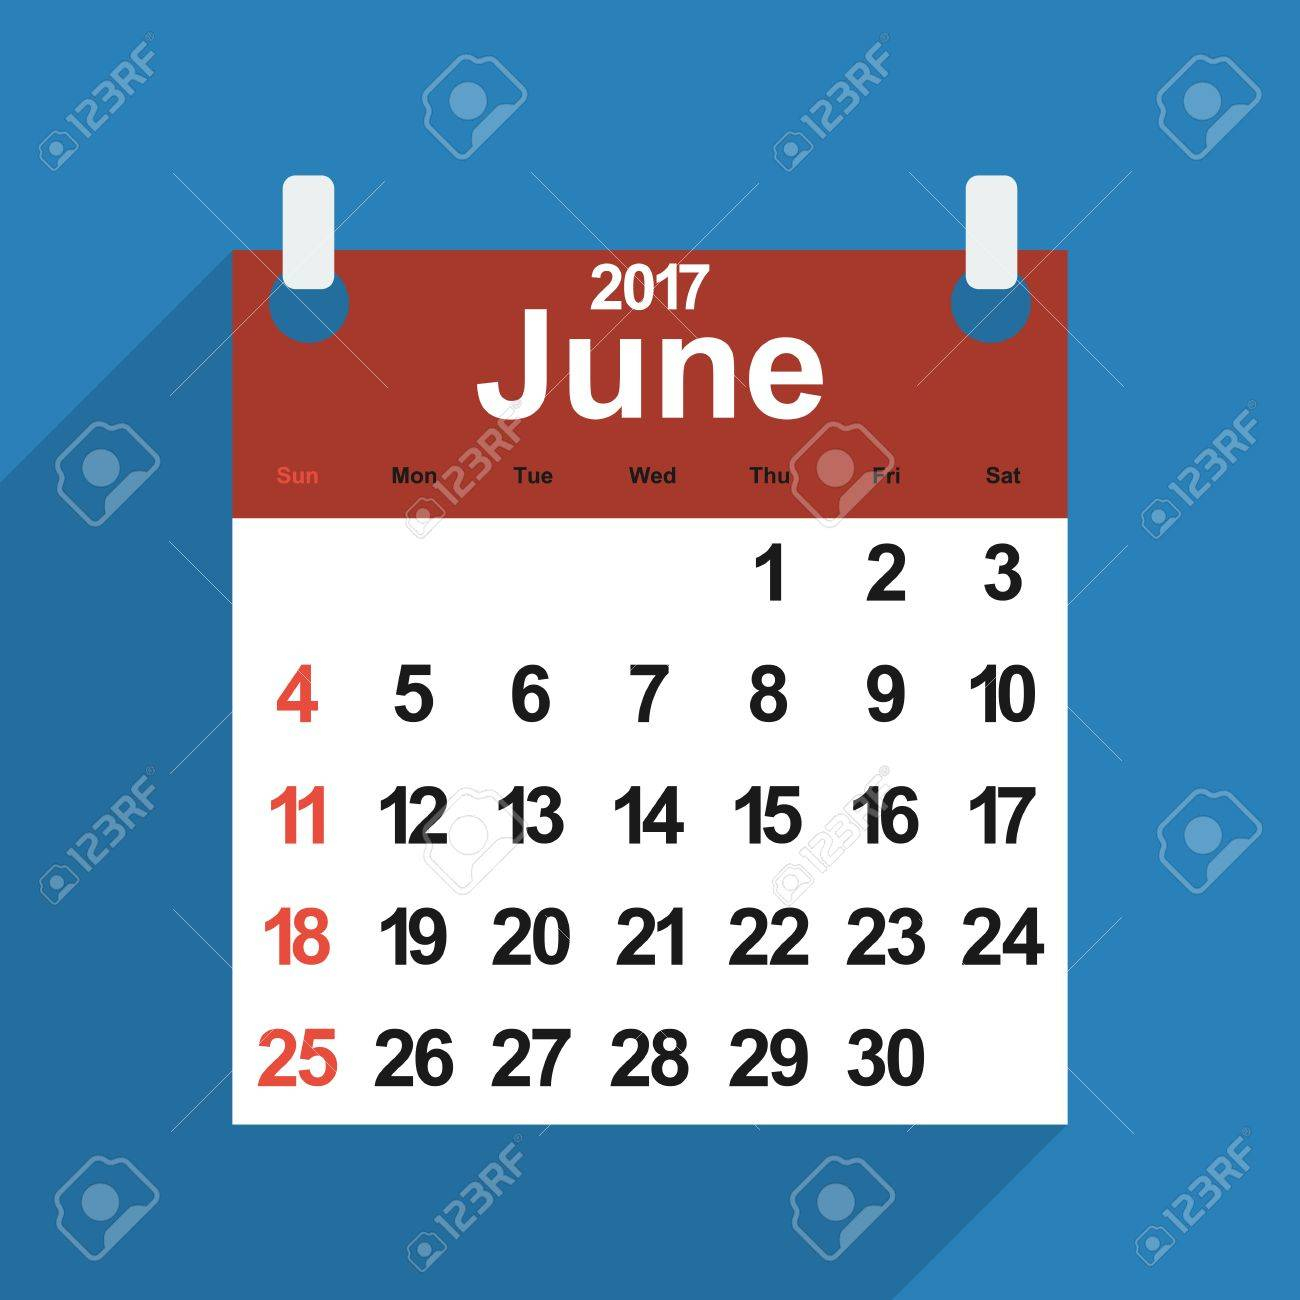 Leaf Calendar 2017 With The Month Of June Days Of The Week And Dates